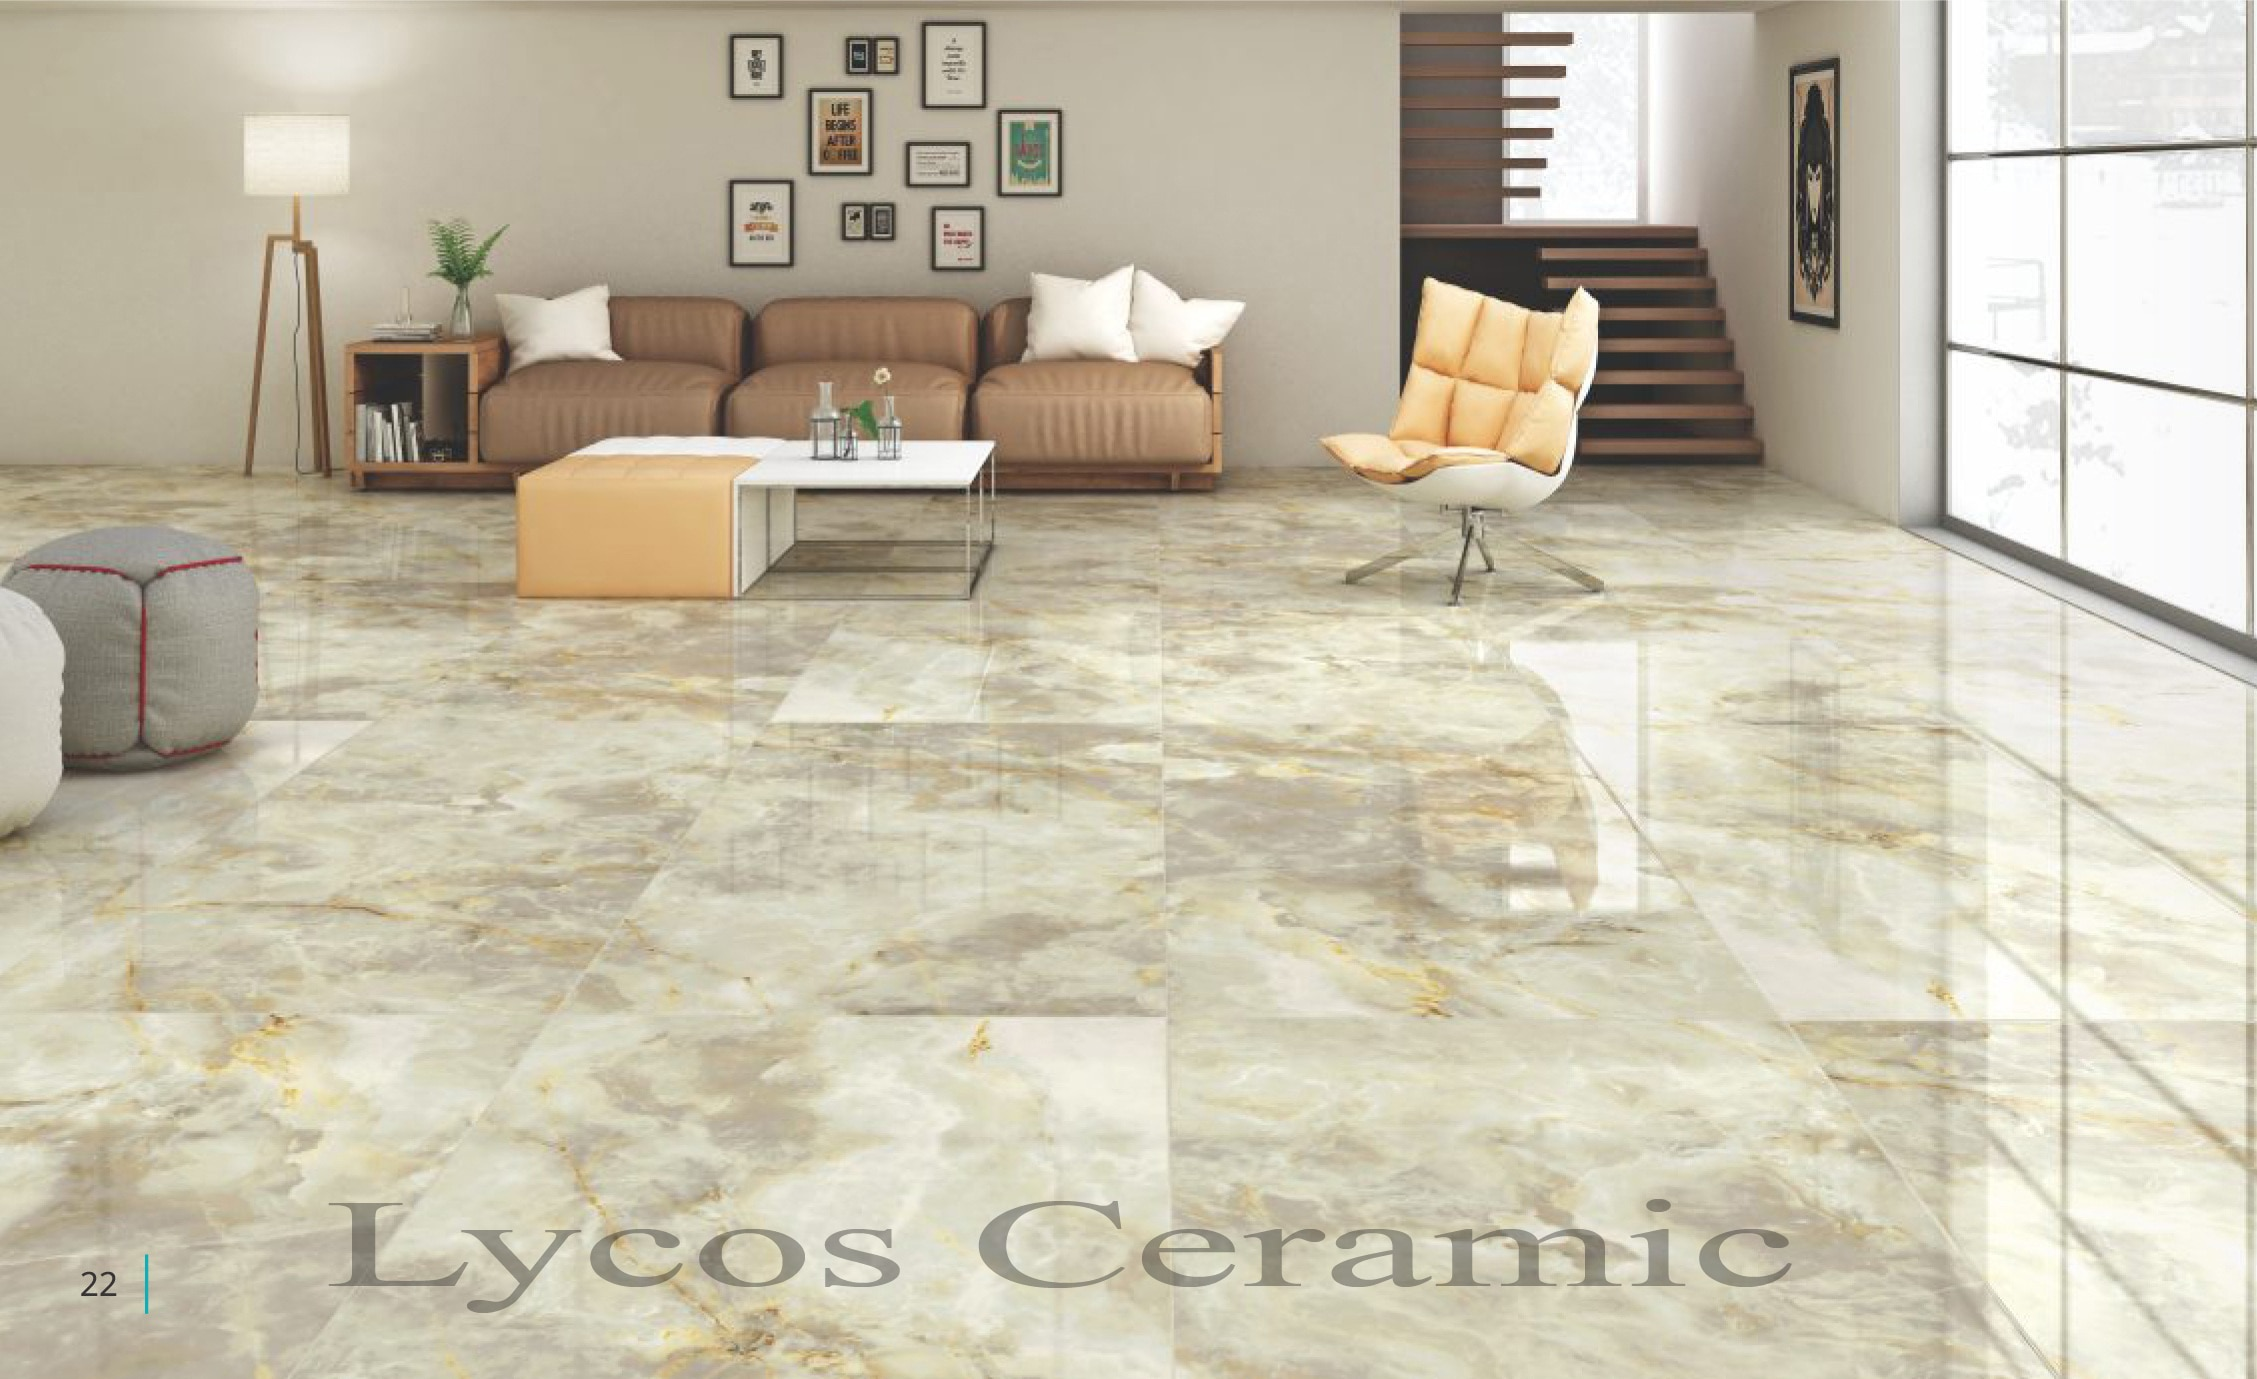 Floor porcelain tiles